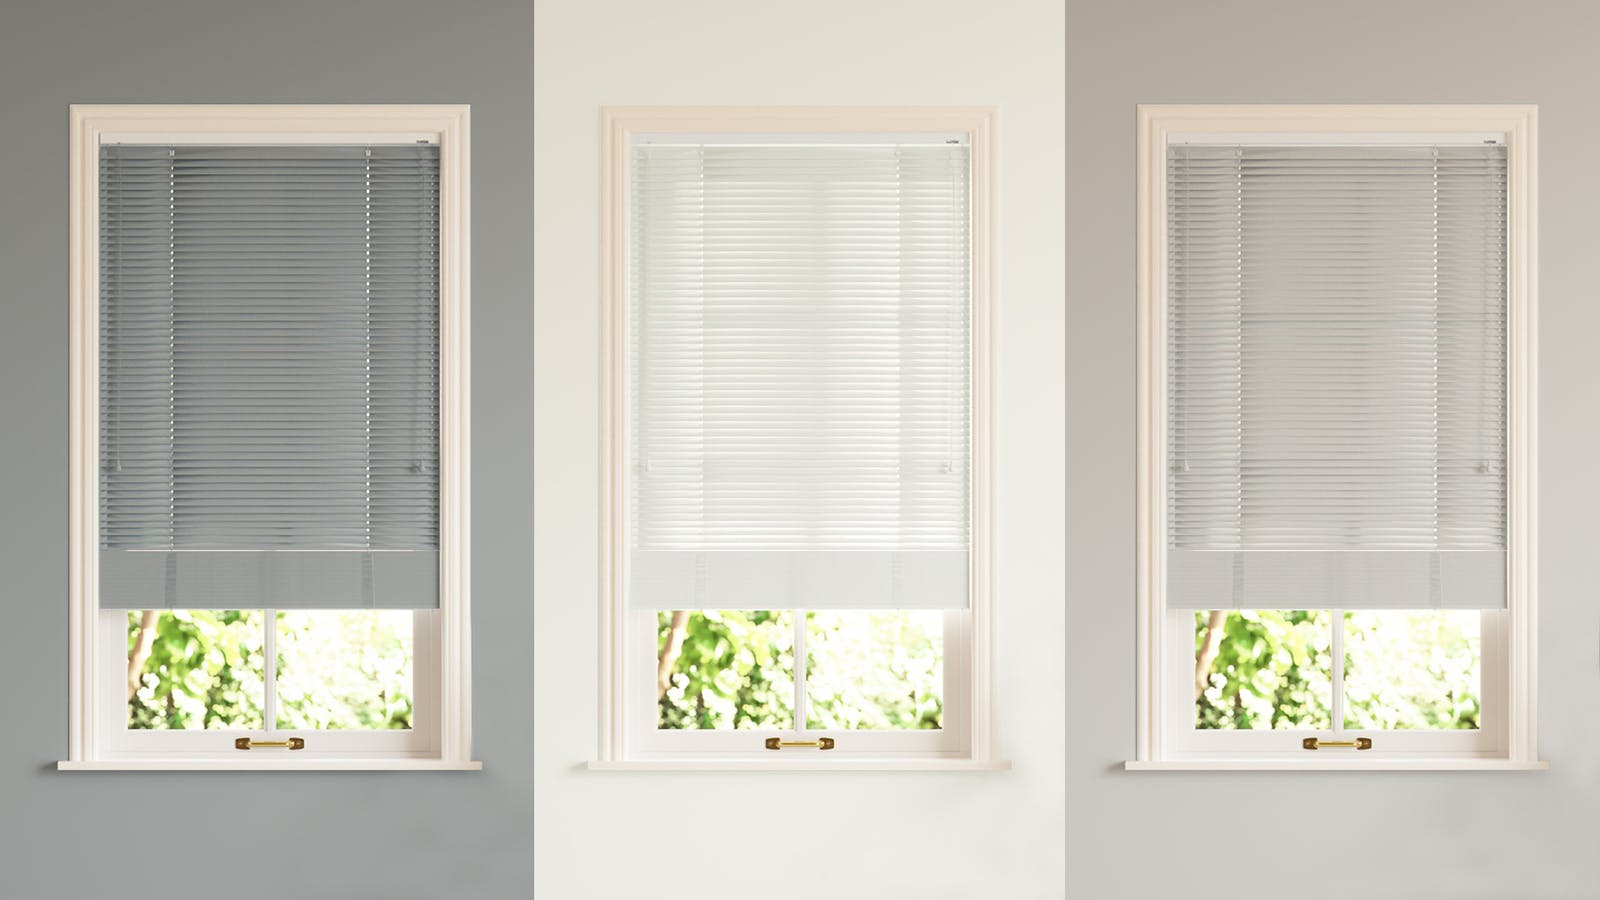 A collage of Lick Venetian blinds in a row in the colours slate grey, white and a soft warm grey